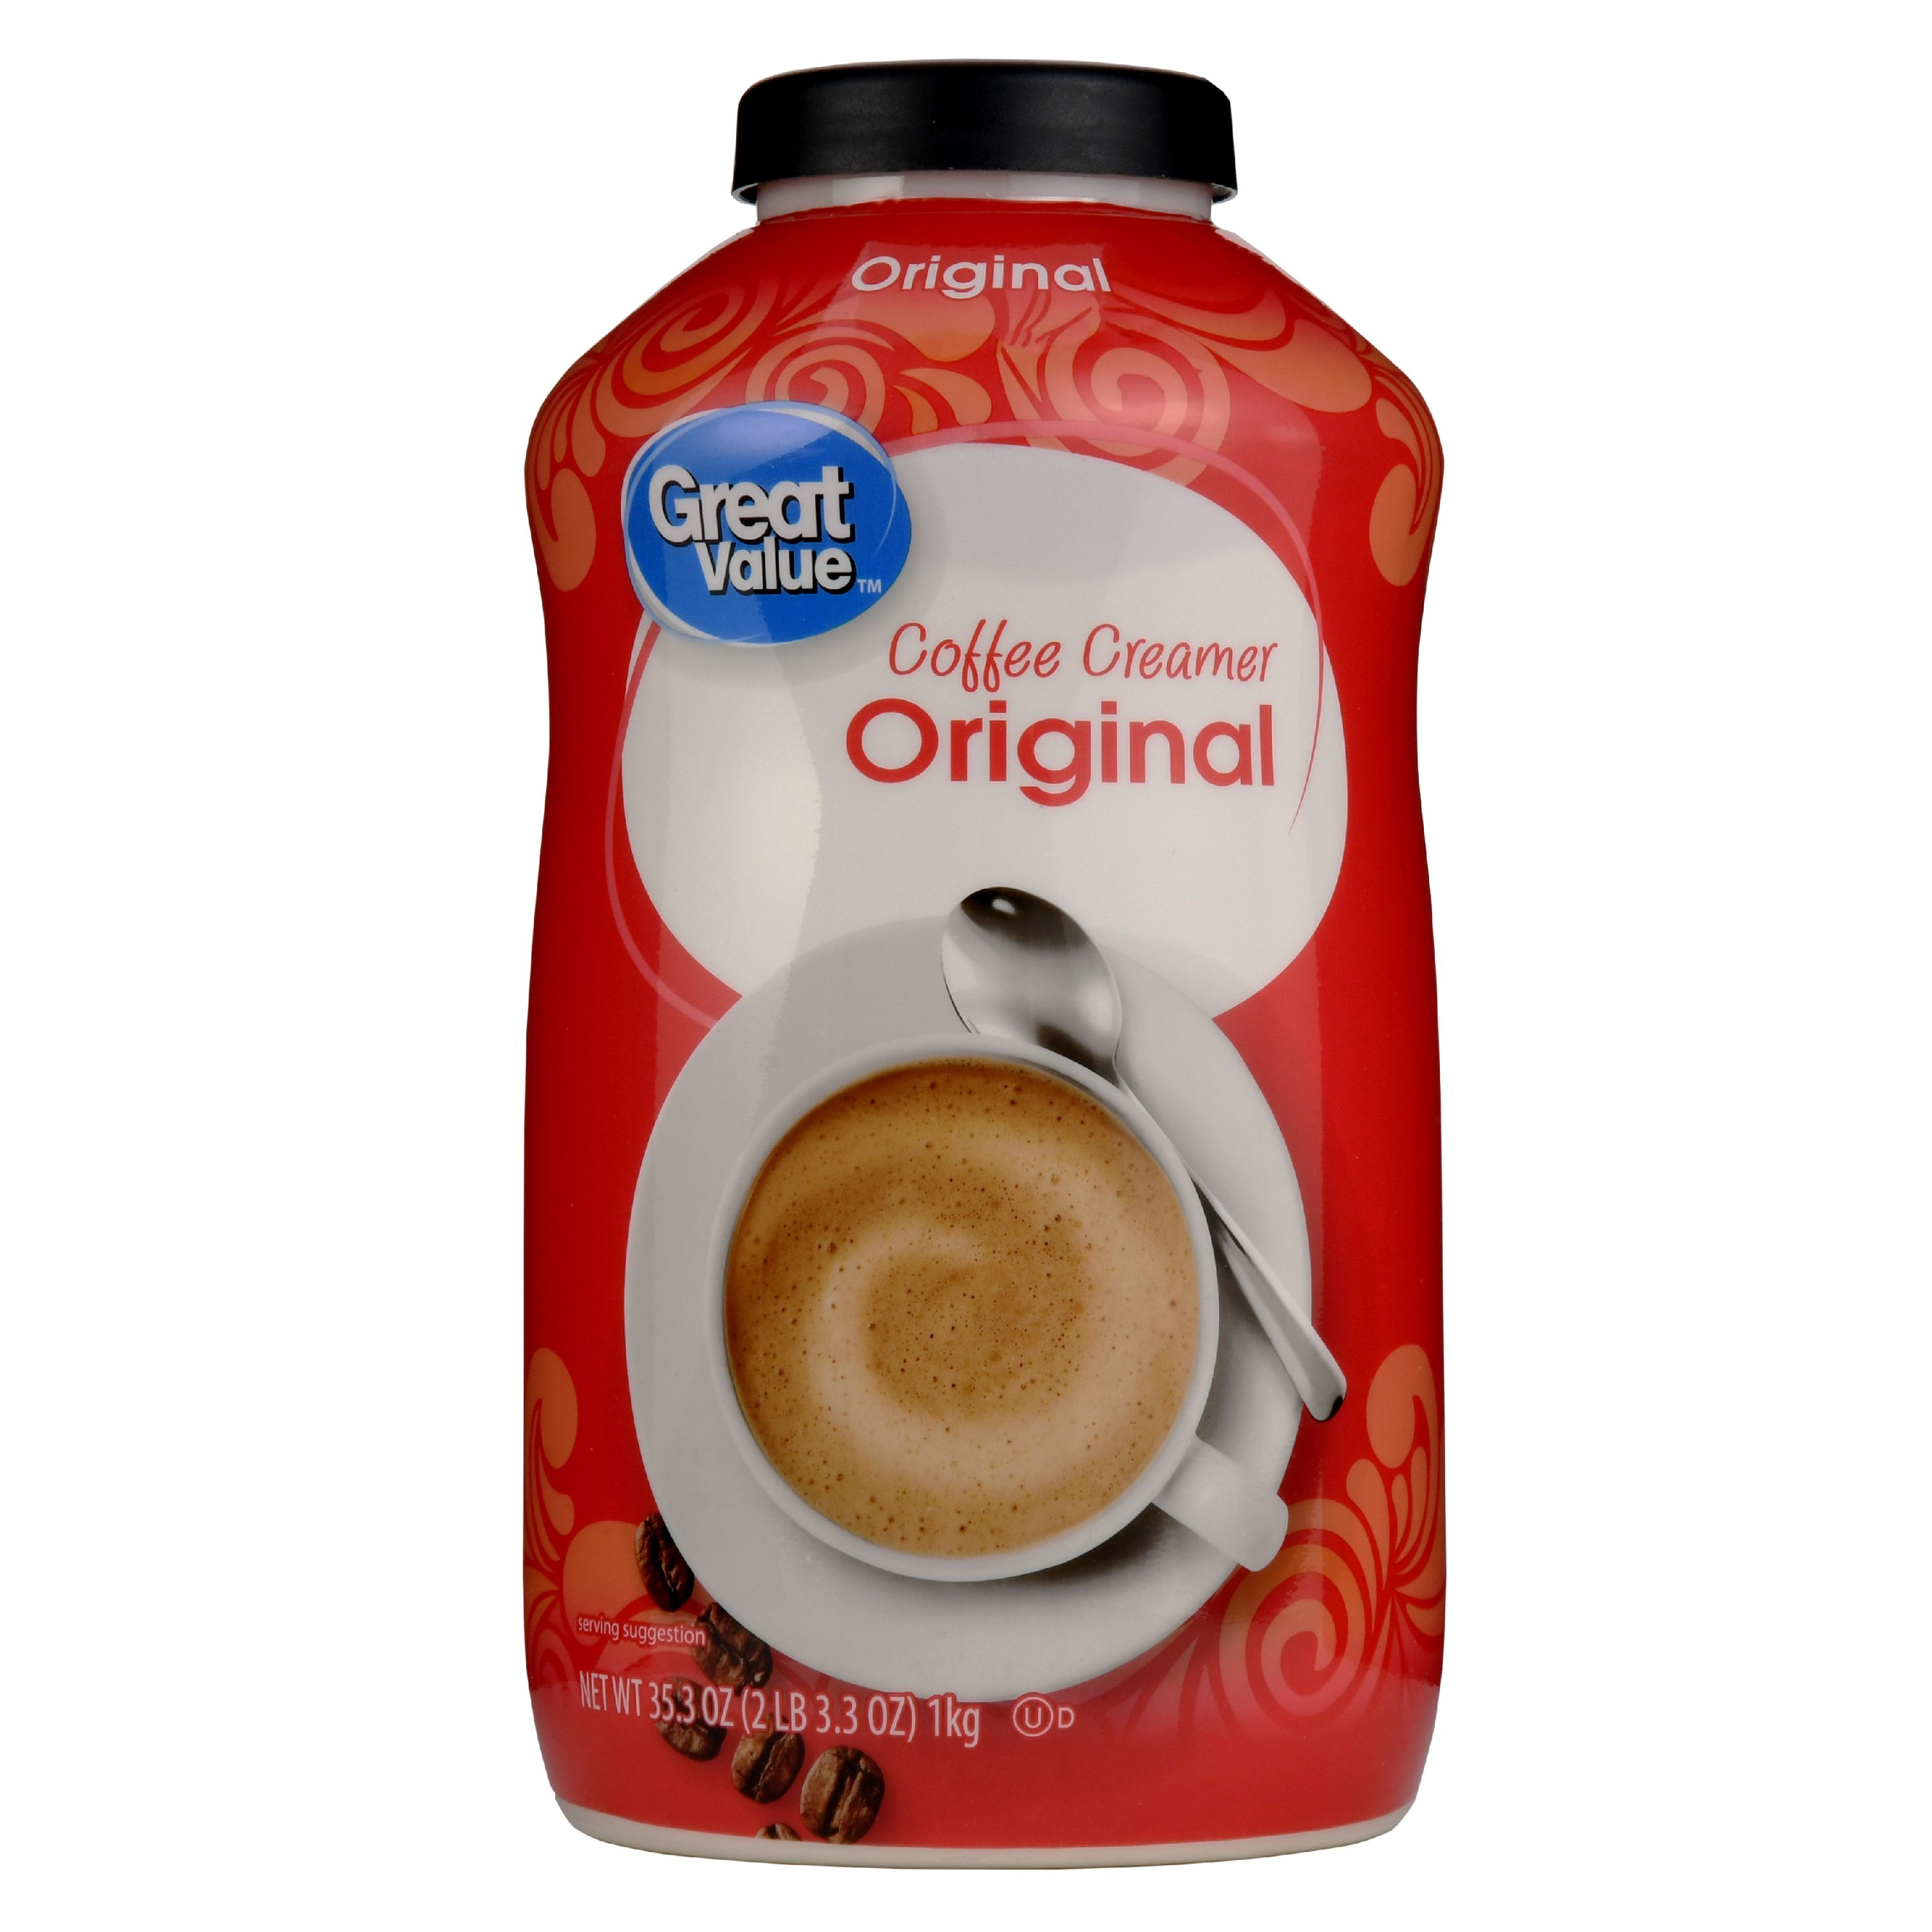 Great Value Coffee Creamer, Original, 35.3 fl oz